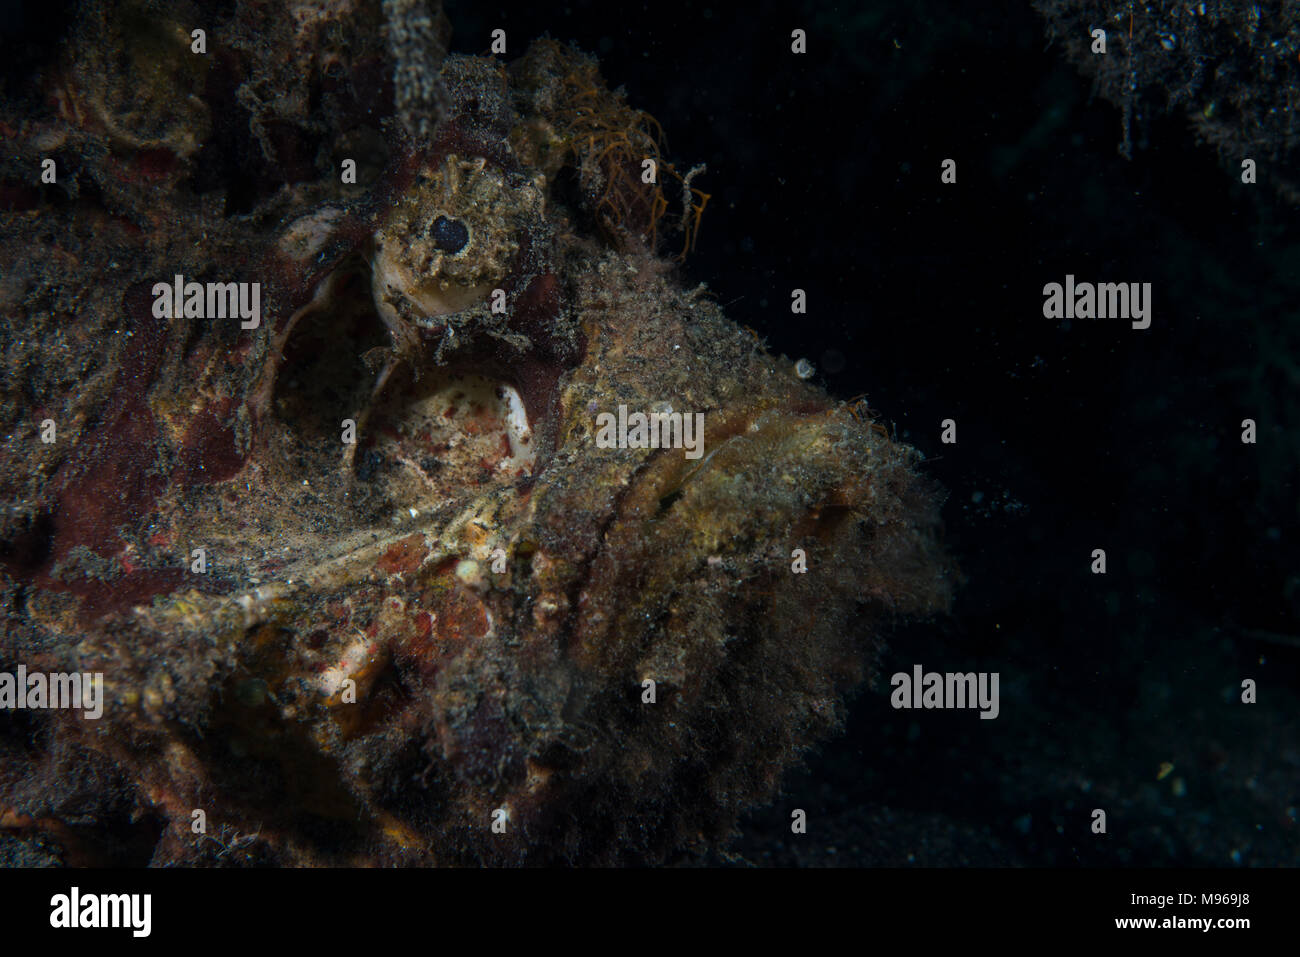 Portrait of an Estuarine stonefish, Synanceia horrida, Lembeh Island, Lembeh Strait, Pacific Ocean, Indonesia, - Stock Image